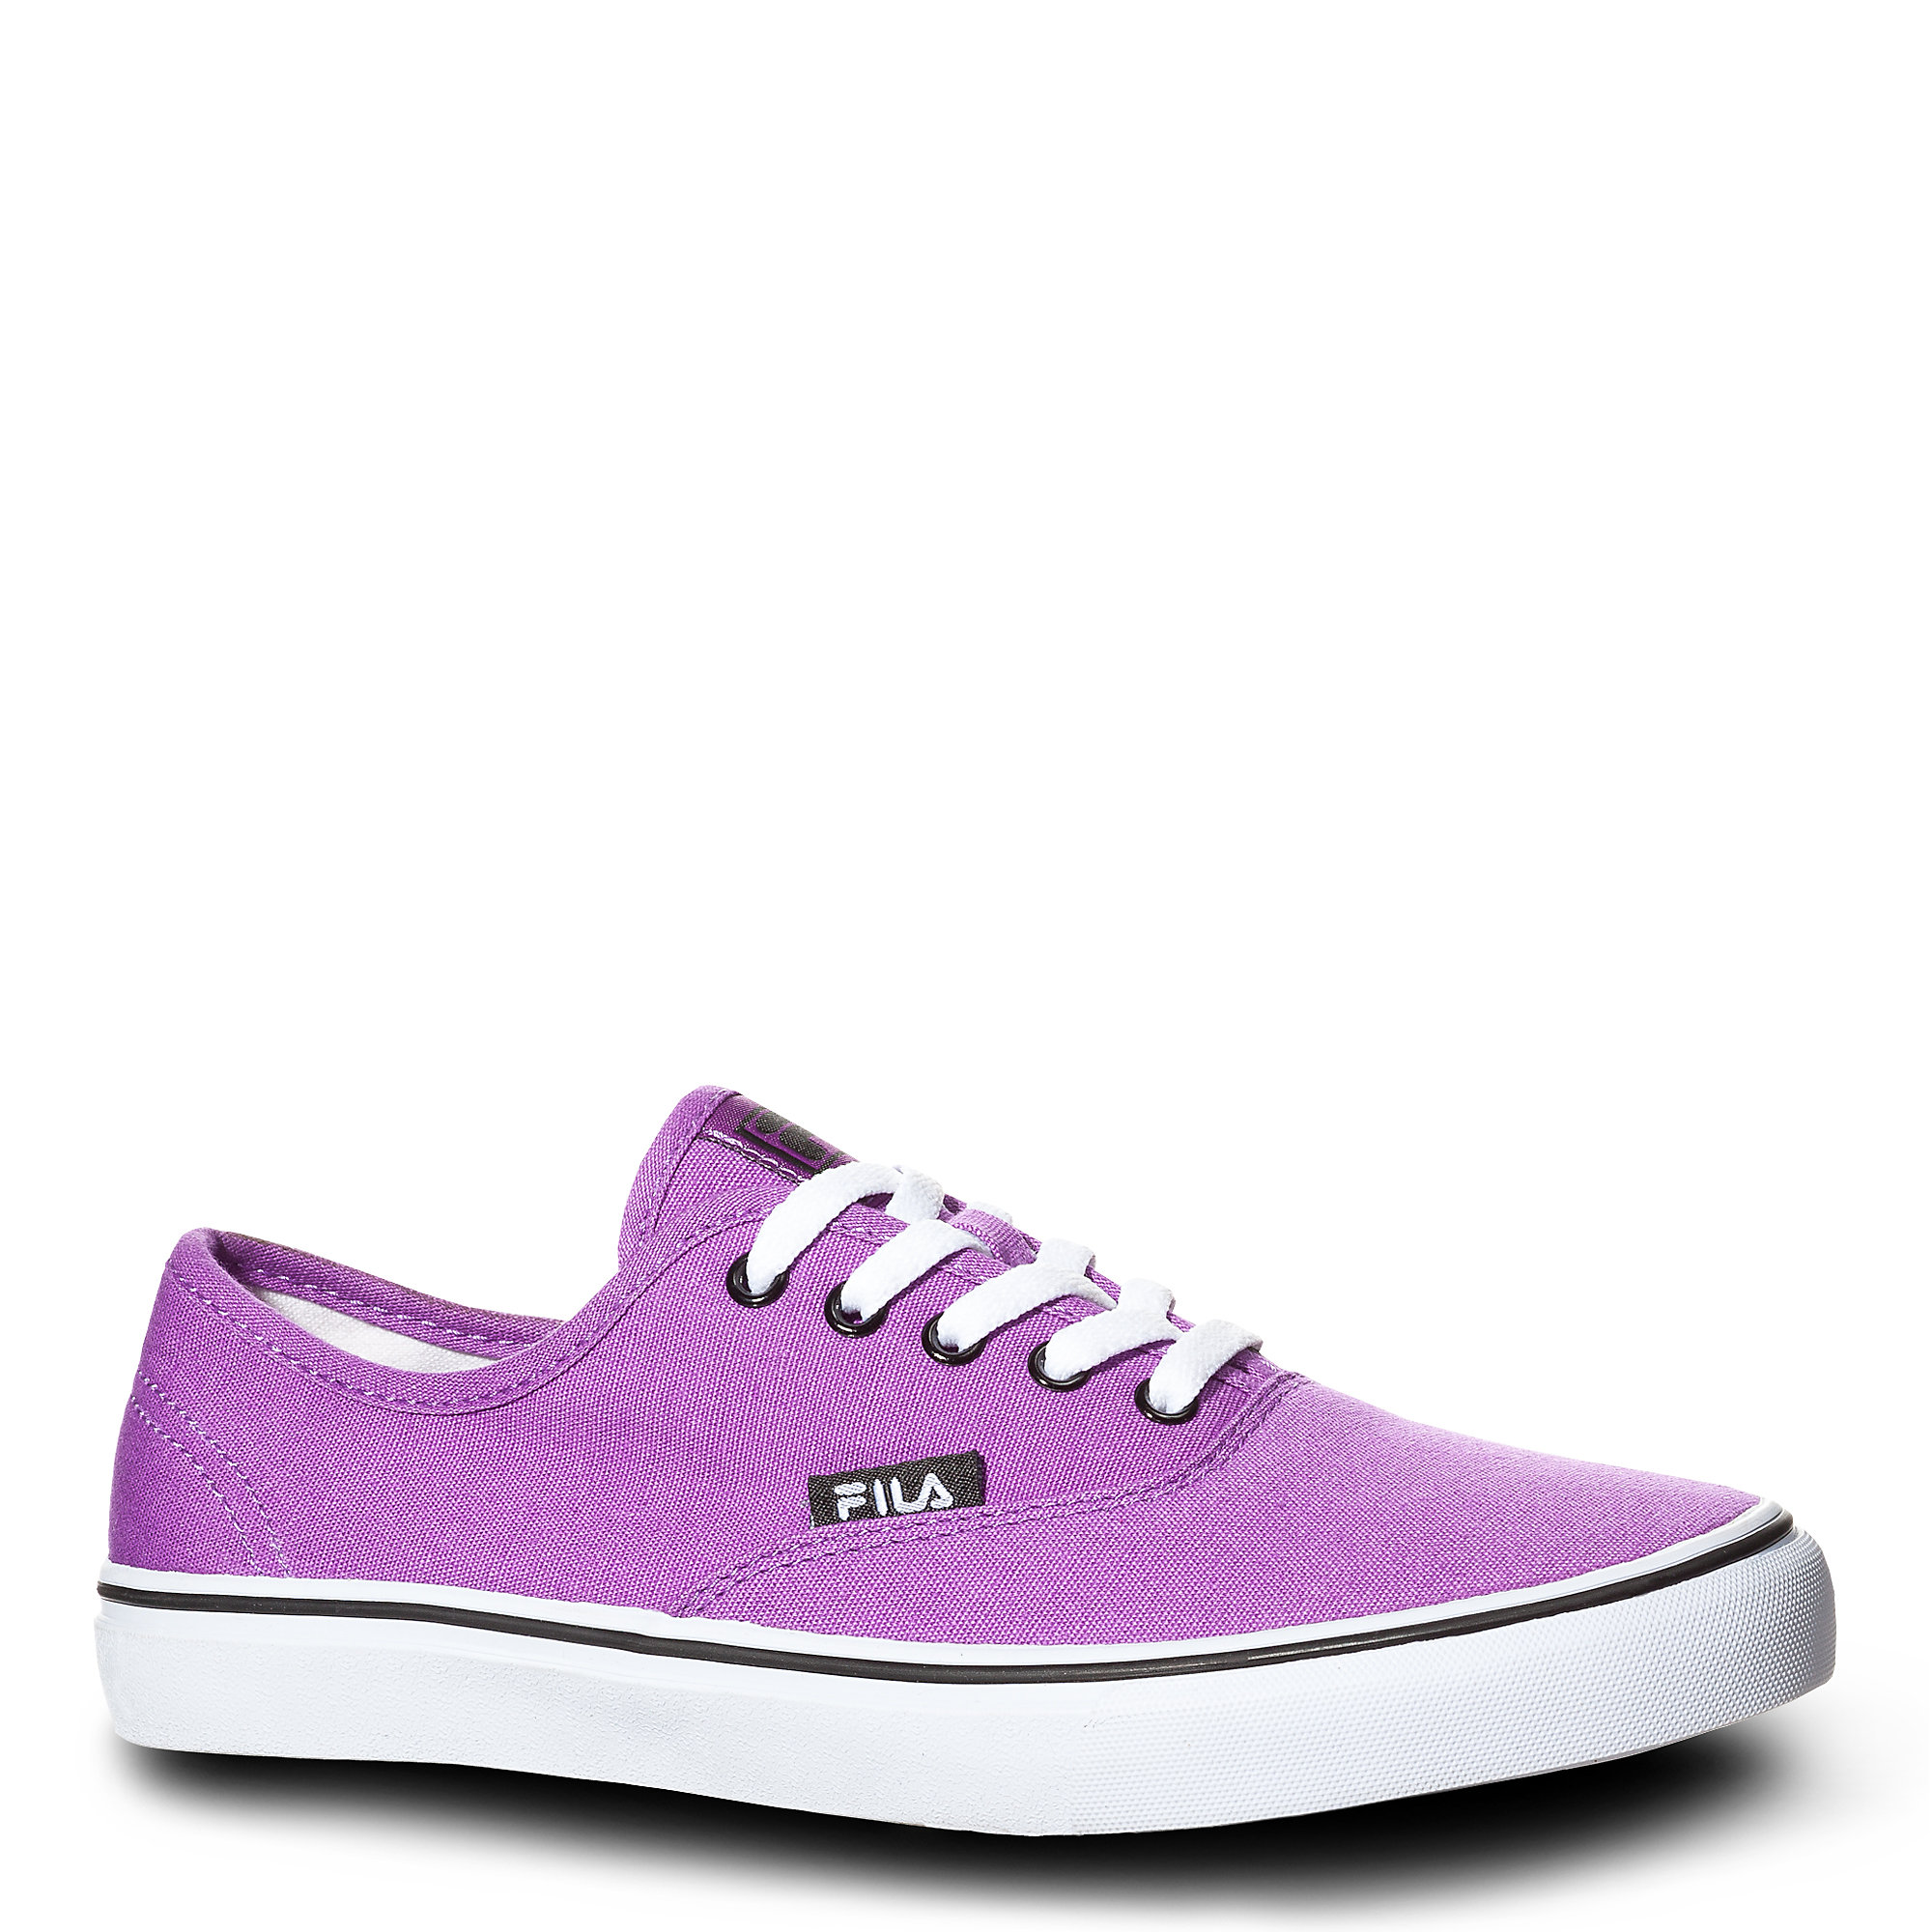 fila for women. fila-women-039-s-classic-canvas-shoes fila for women w